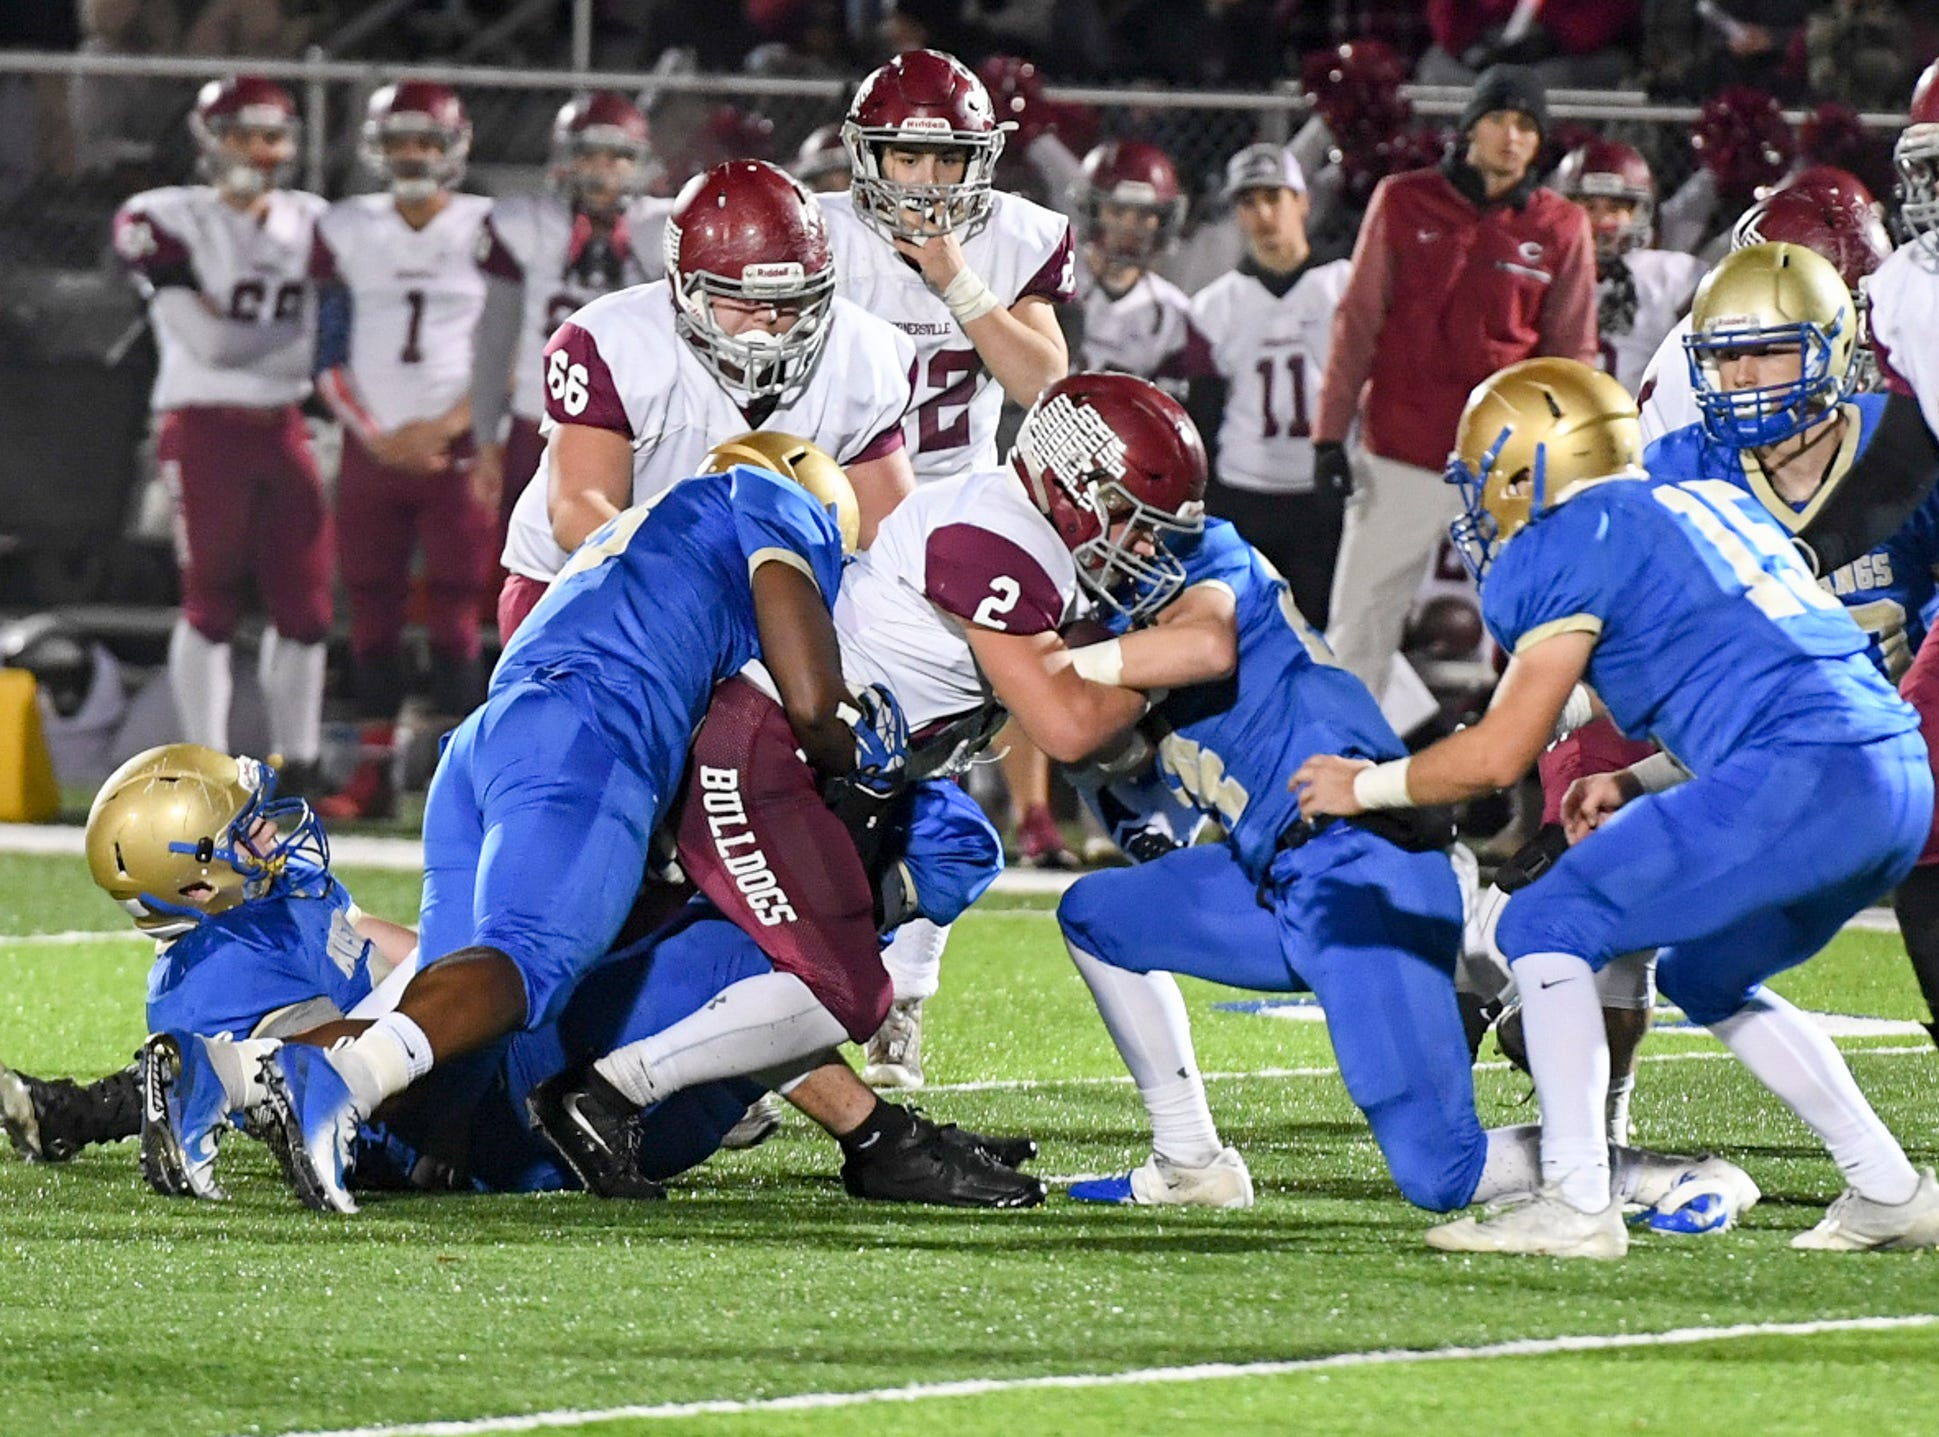 Cornersville's Trenten Warren is stopped by Huntingdon defenders during their TSSAA Class A quarter final game, Friday, November 16. Huntingdon fell to Cornersville, 13-7.